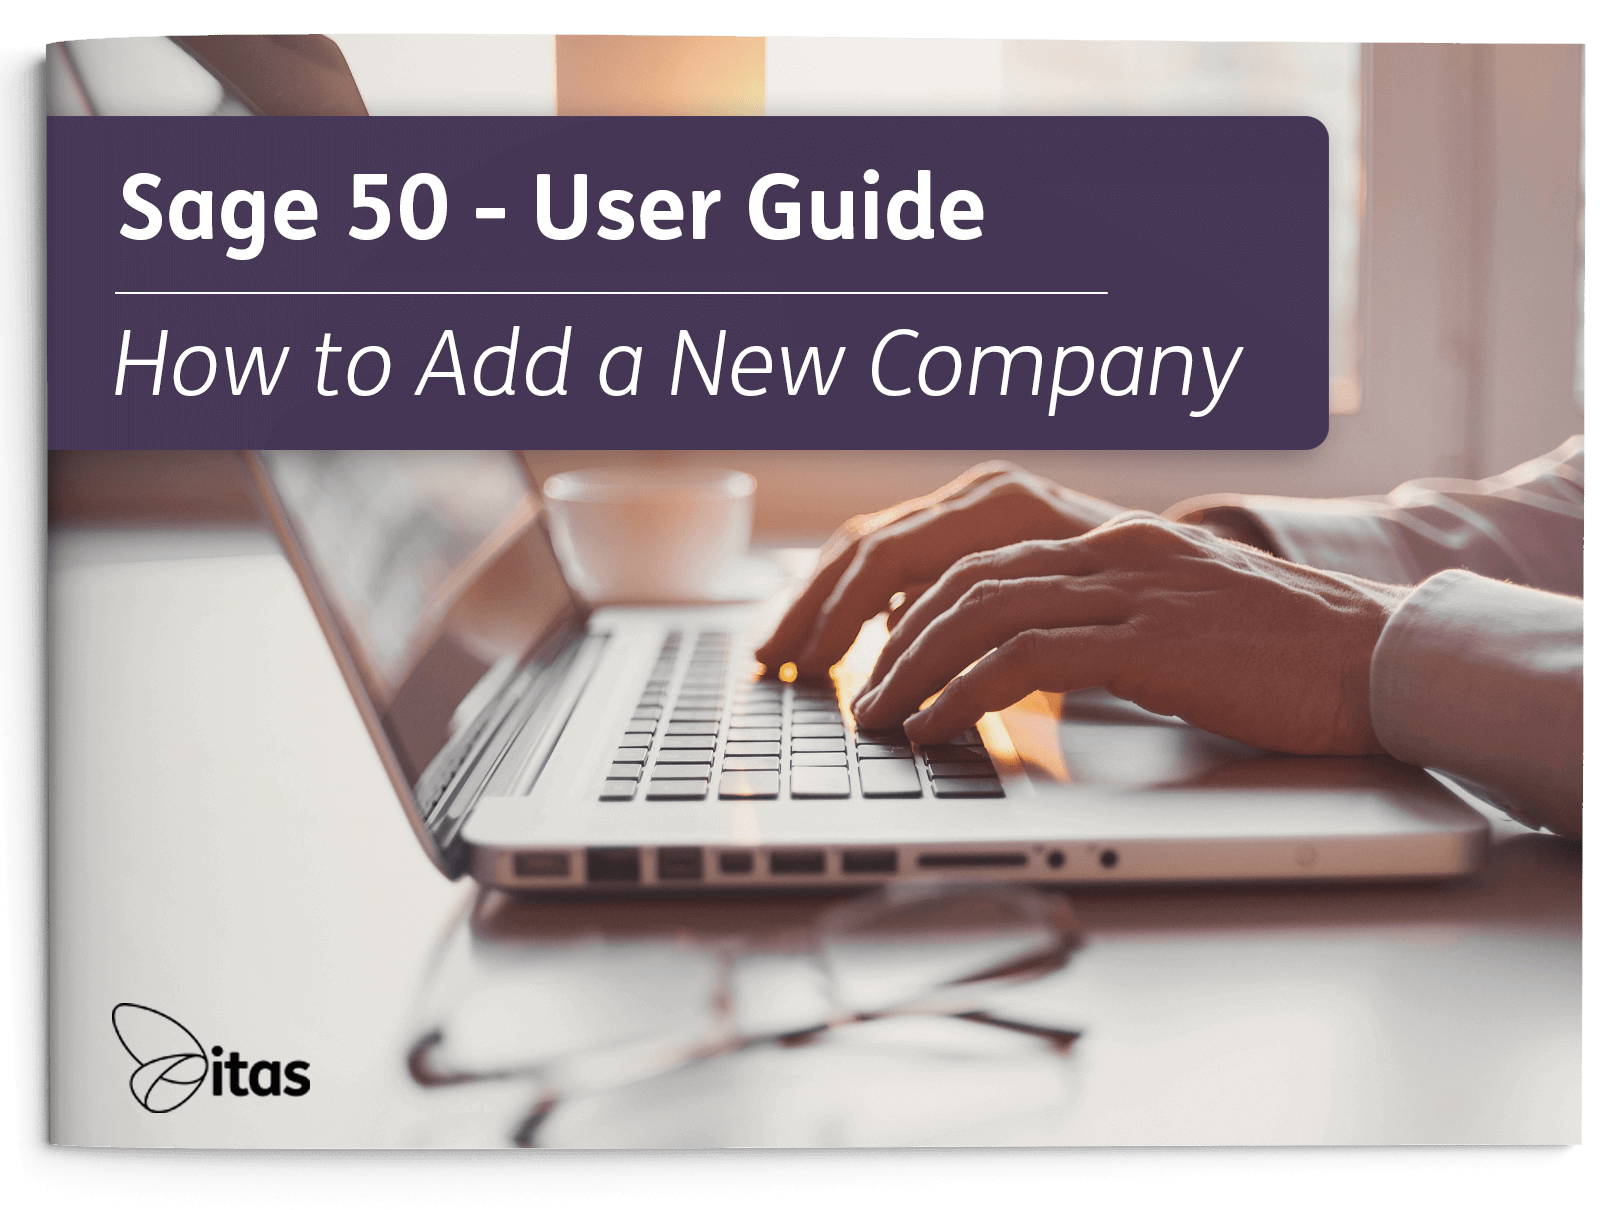 How to add a new company in Sage 50 help guide